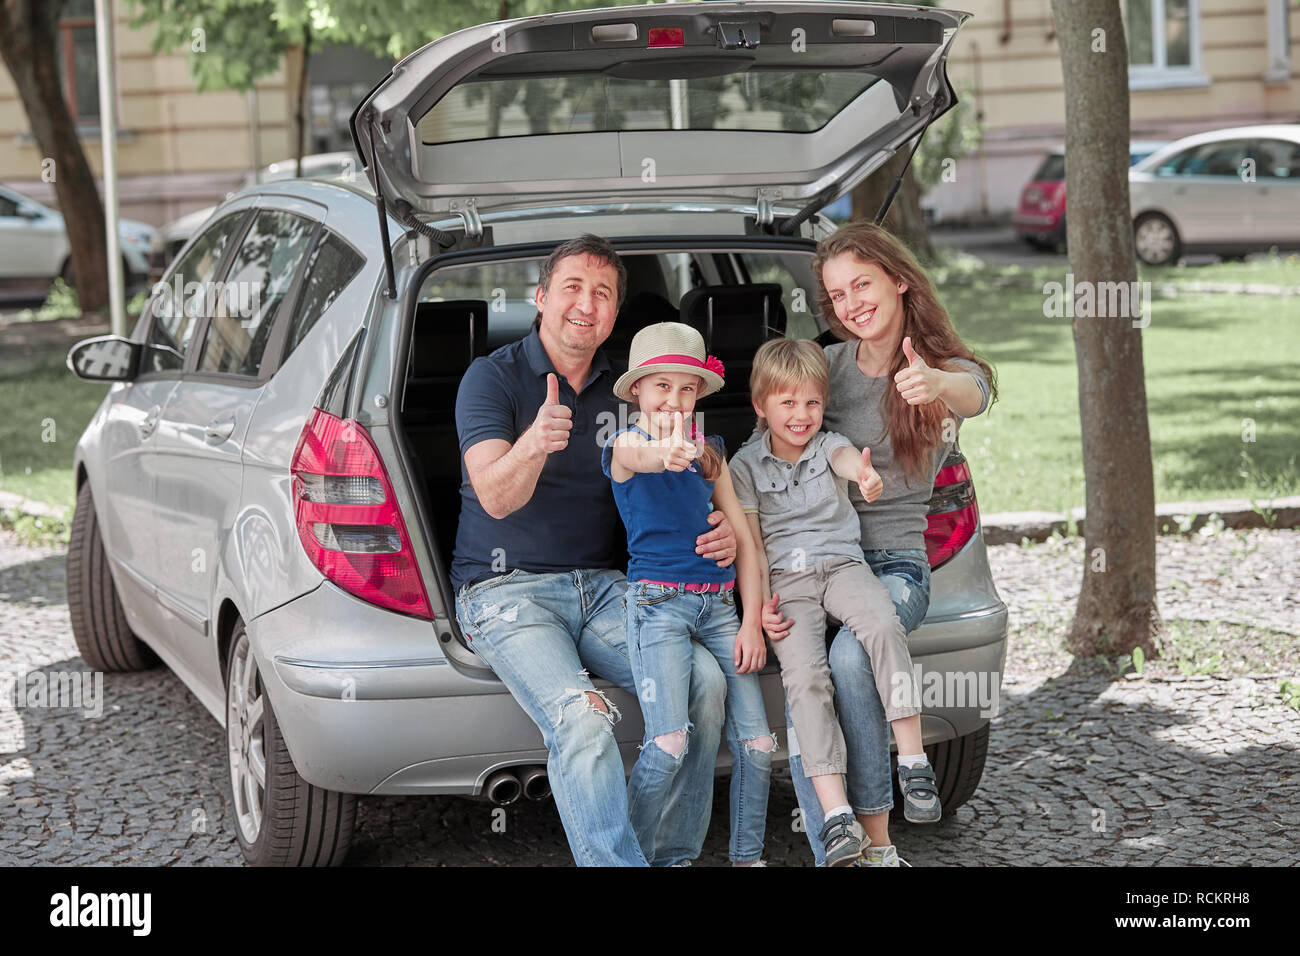 family sitting in the trunk of a family car and showing thumbs up - Stock Image